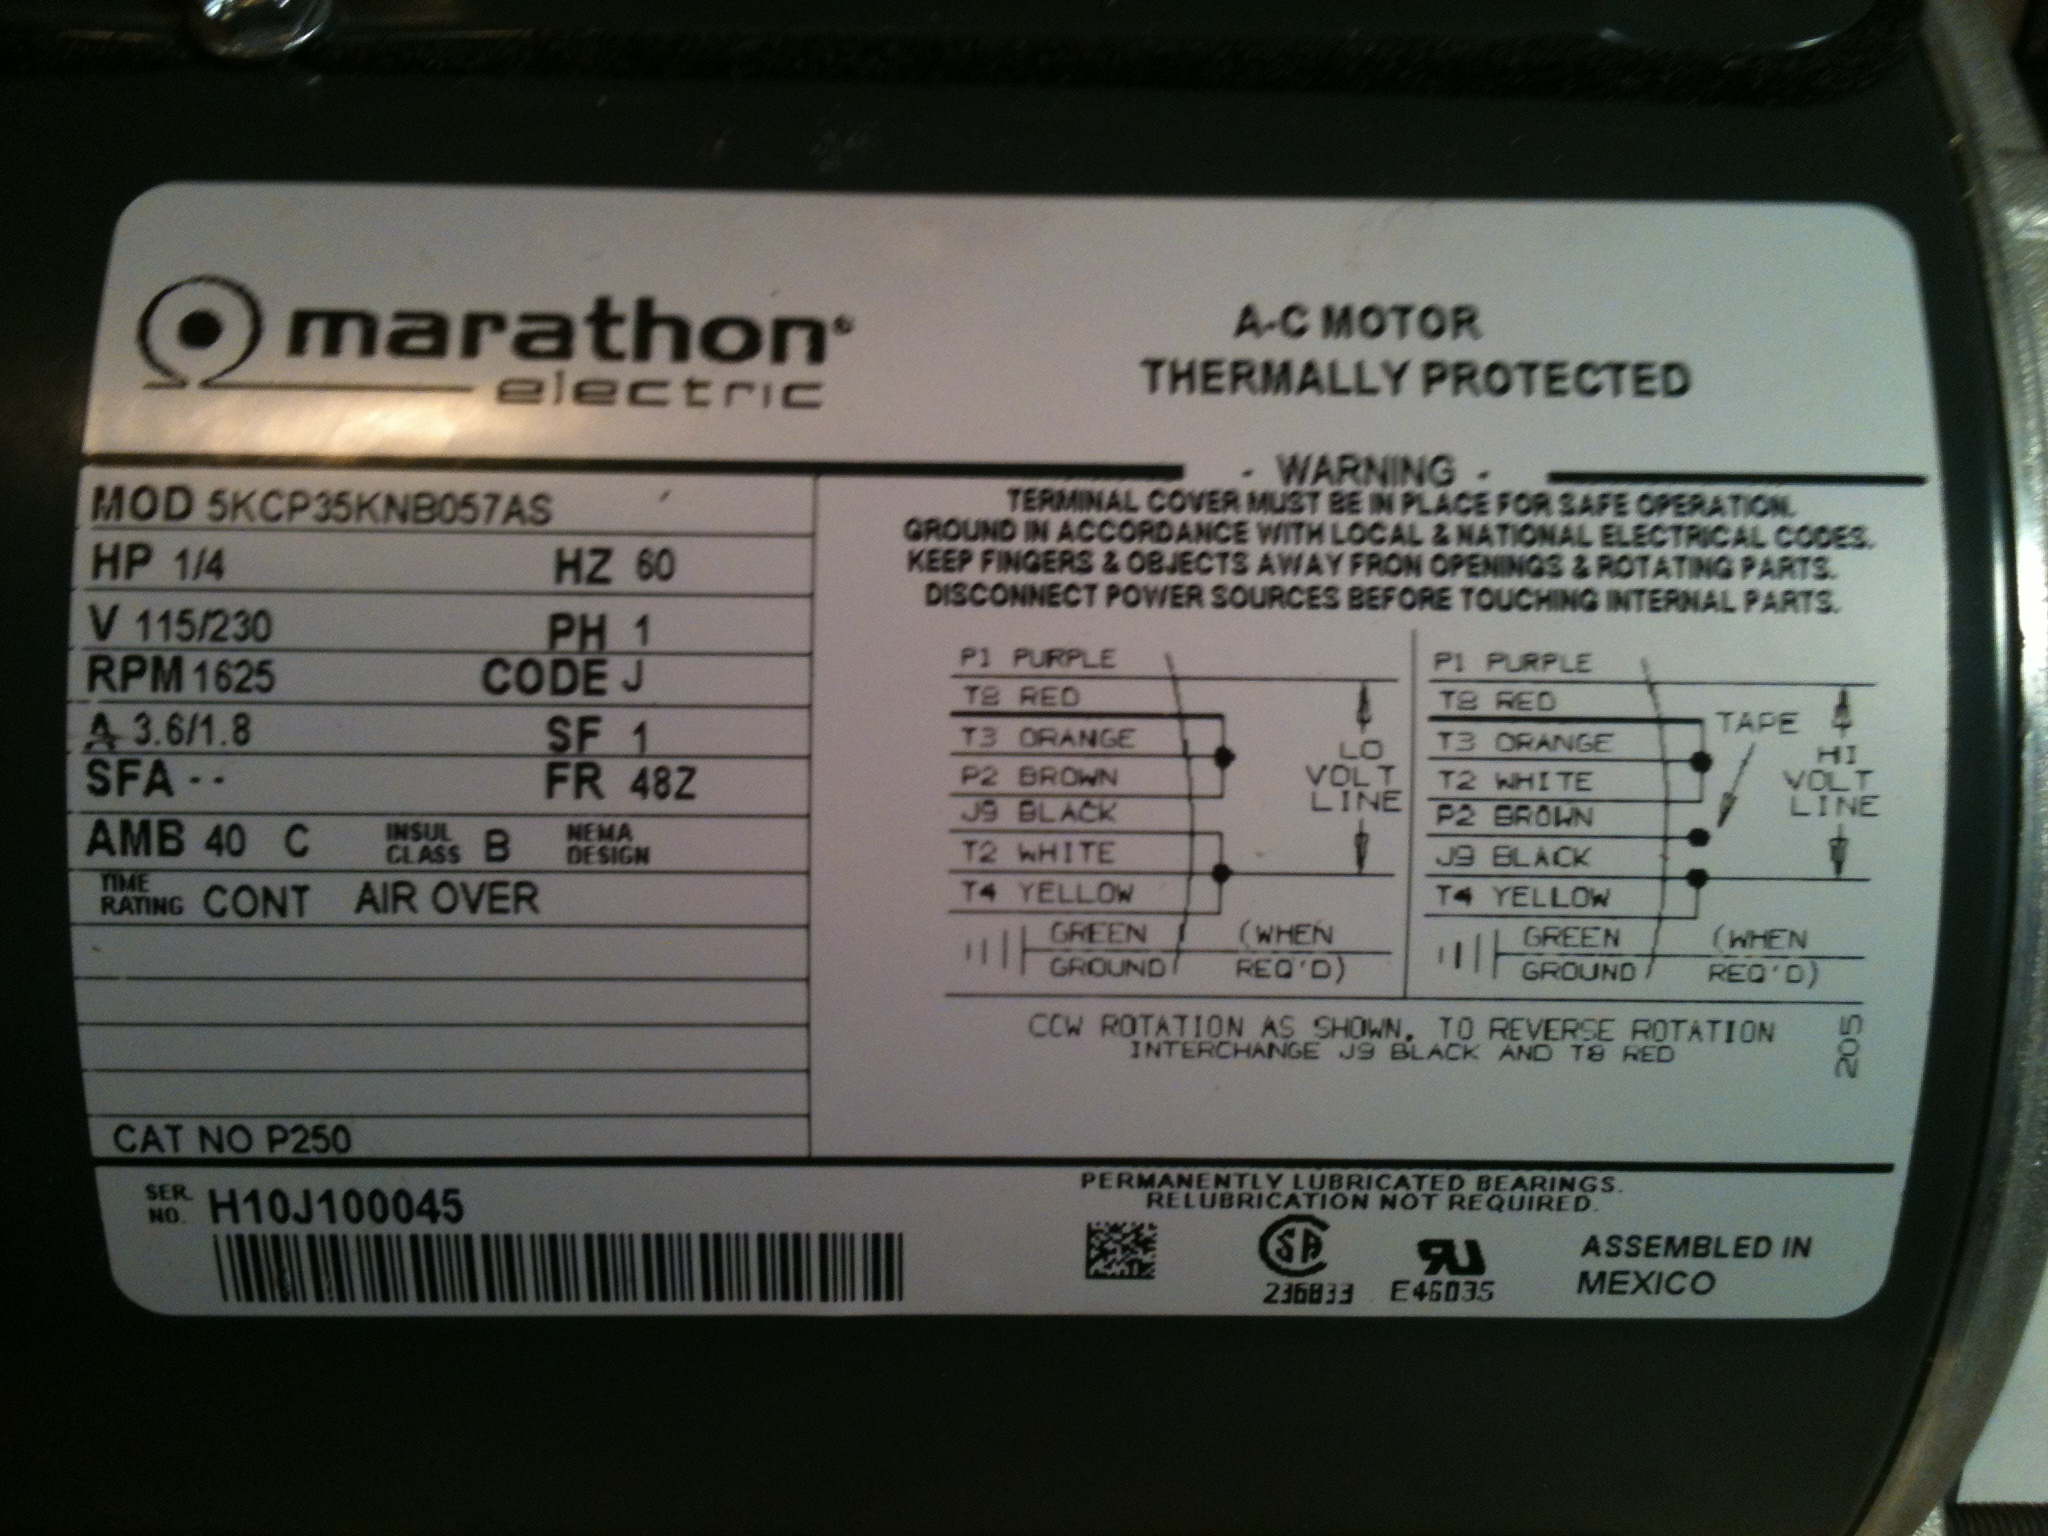 marathon ac motor wiring diagram tactile transducer hi, i just bought a electric motor, hp: 1/4 v 115/230